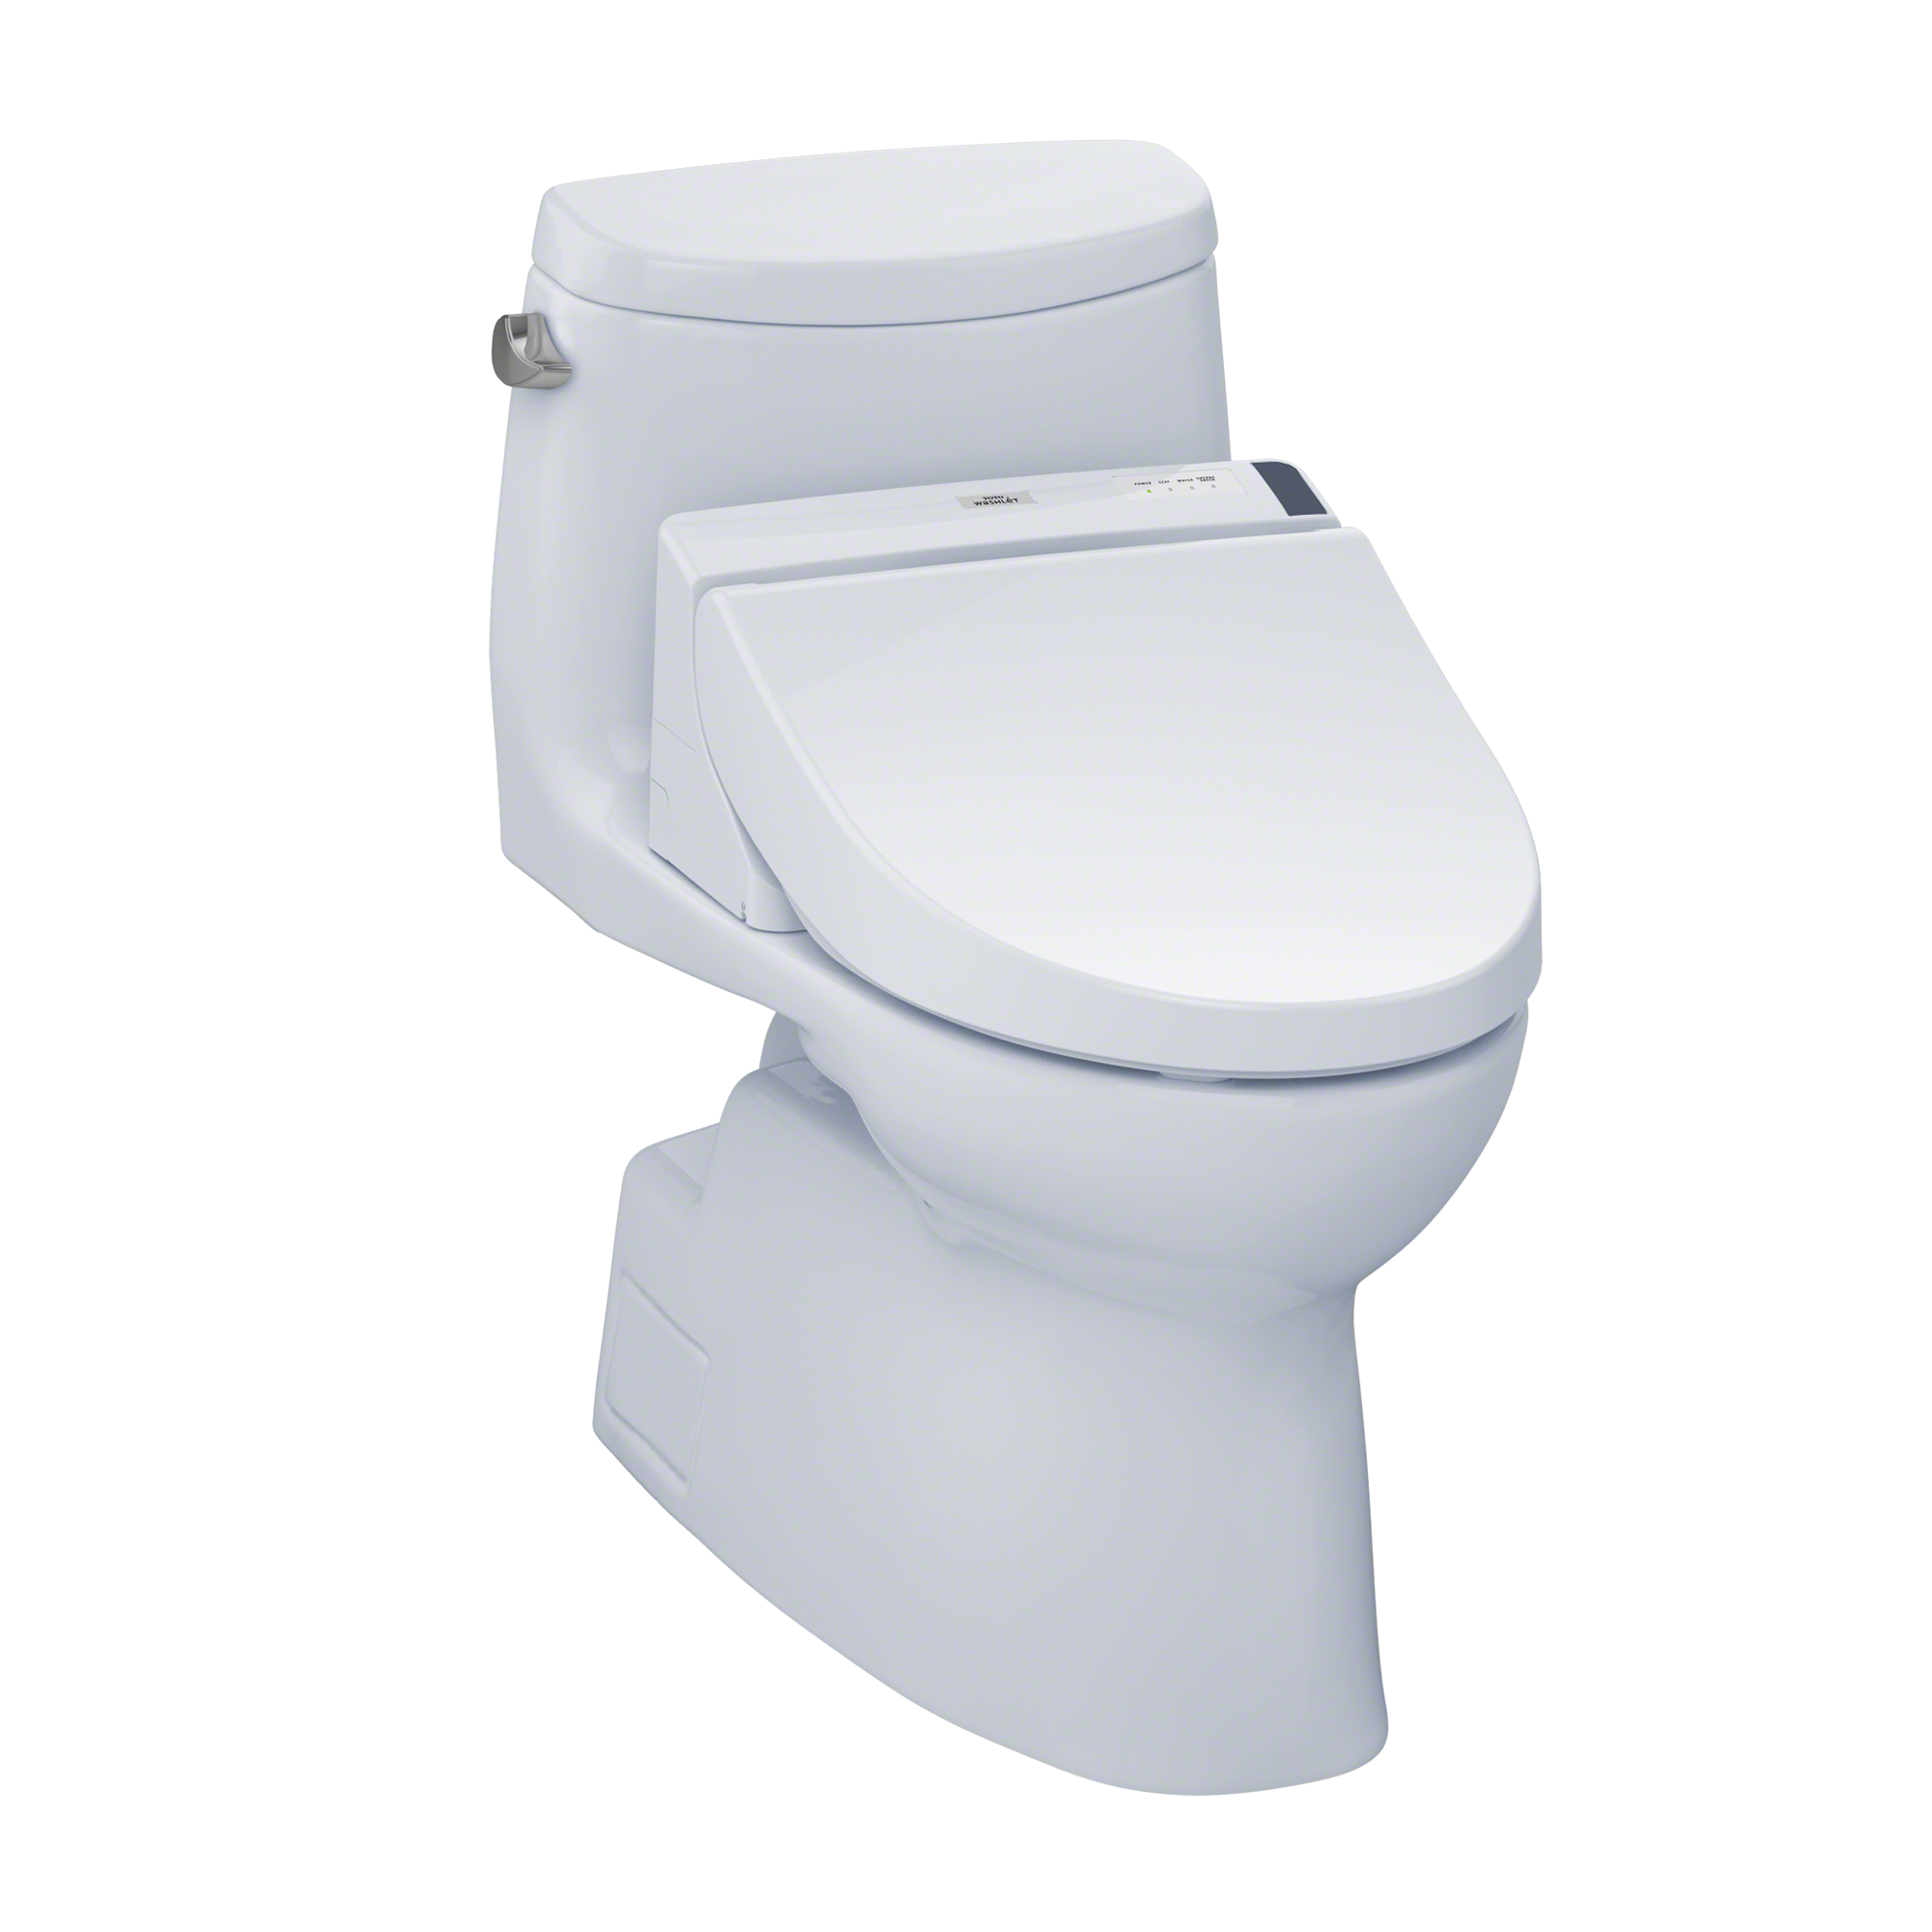 TOTO® Connect+® Kit Carlyle® II One-Piece Elongated 1.28 GPF Toilet and Washlet® C200 Bidet Seat, Cotton White - MW6142044CEFG#01